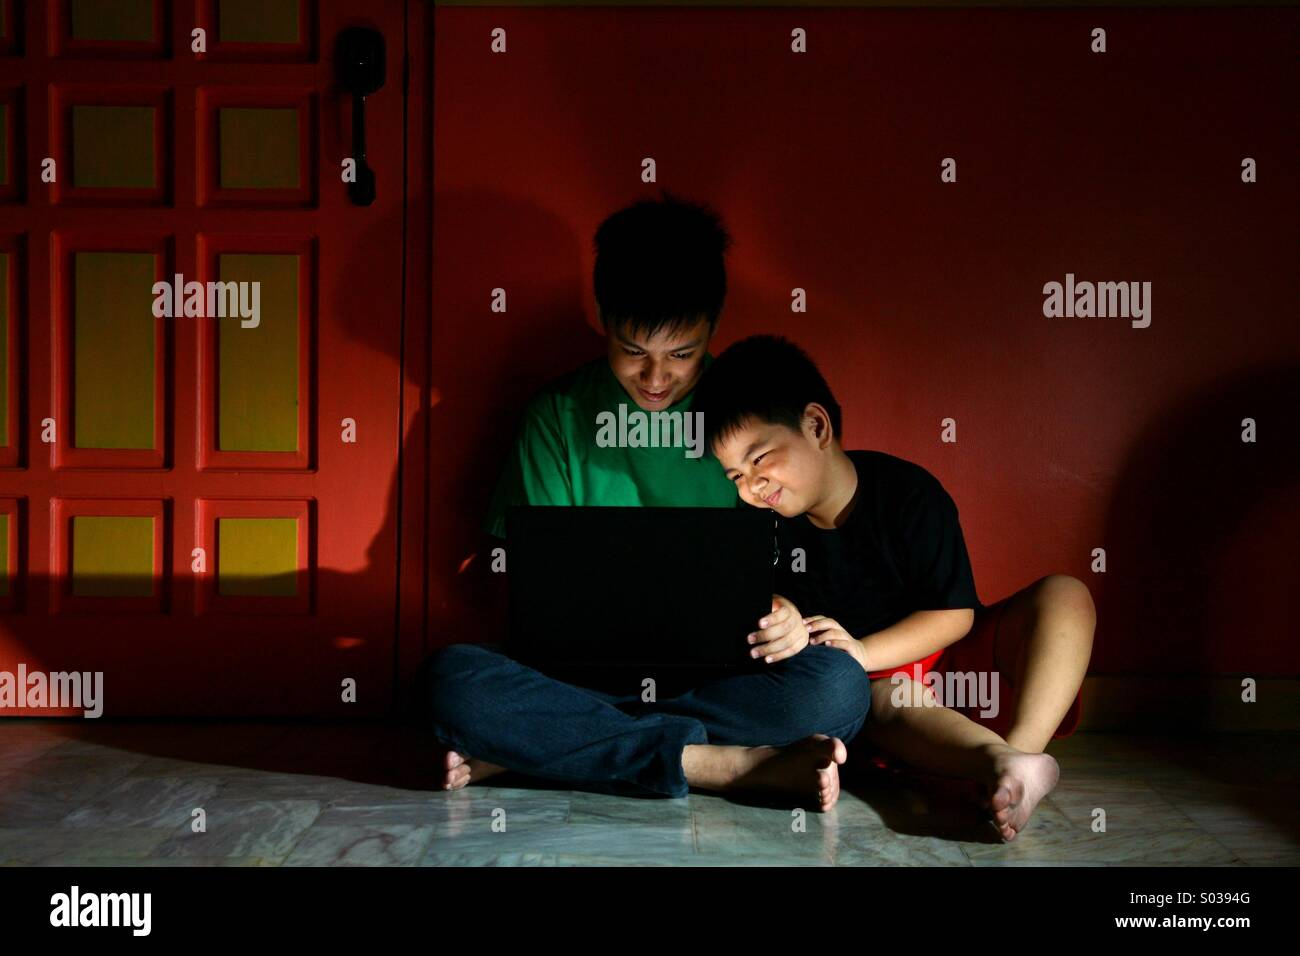 Young asian kids, or siblings with a laptop computer in an empty living room - Stock Image